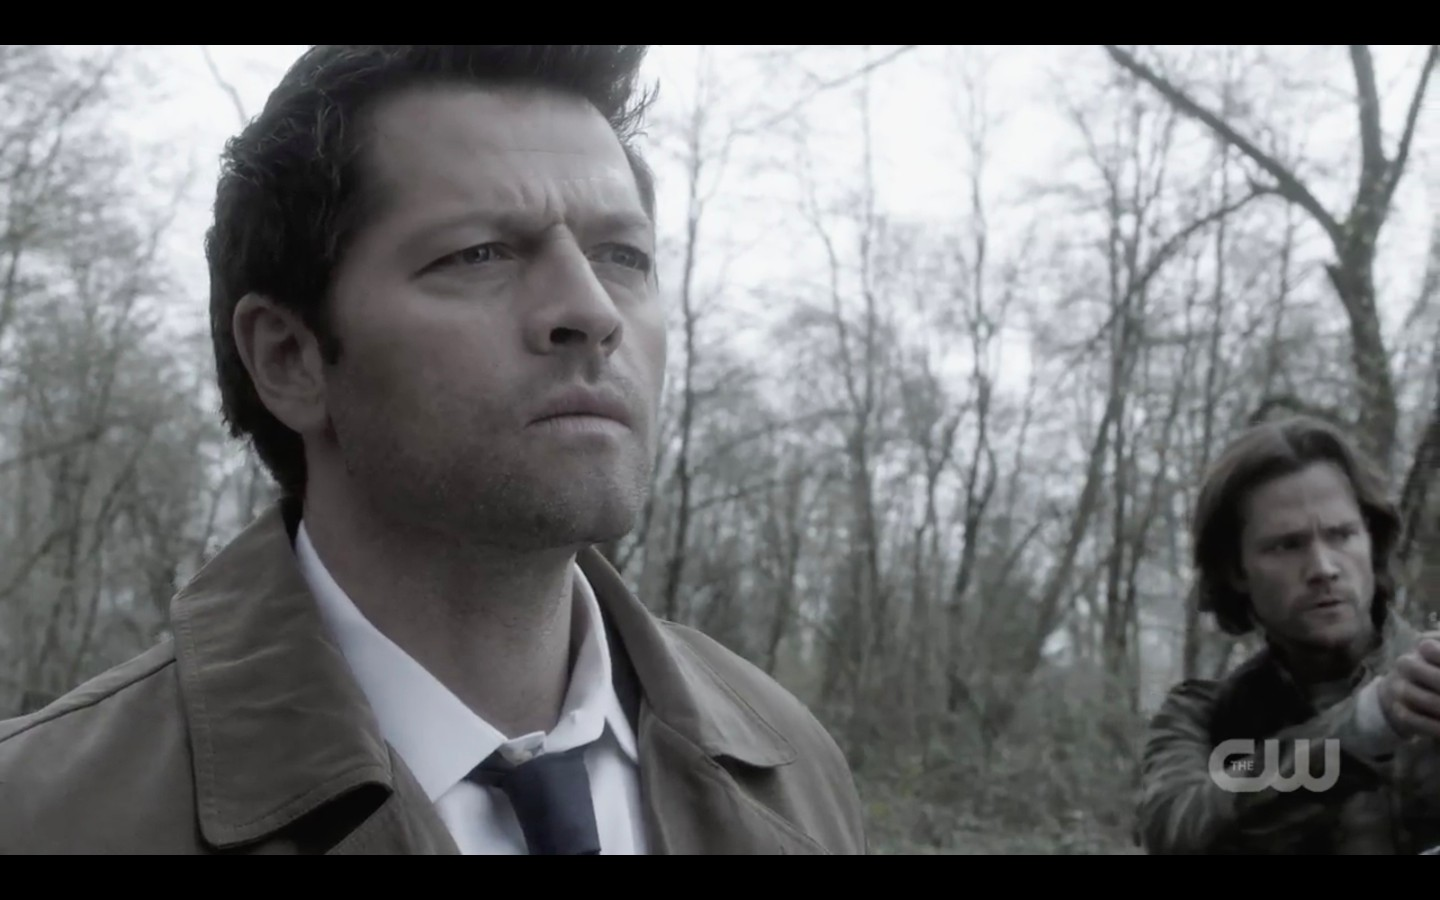 sam winchester with castiel on way to bobby singer exodus 1322